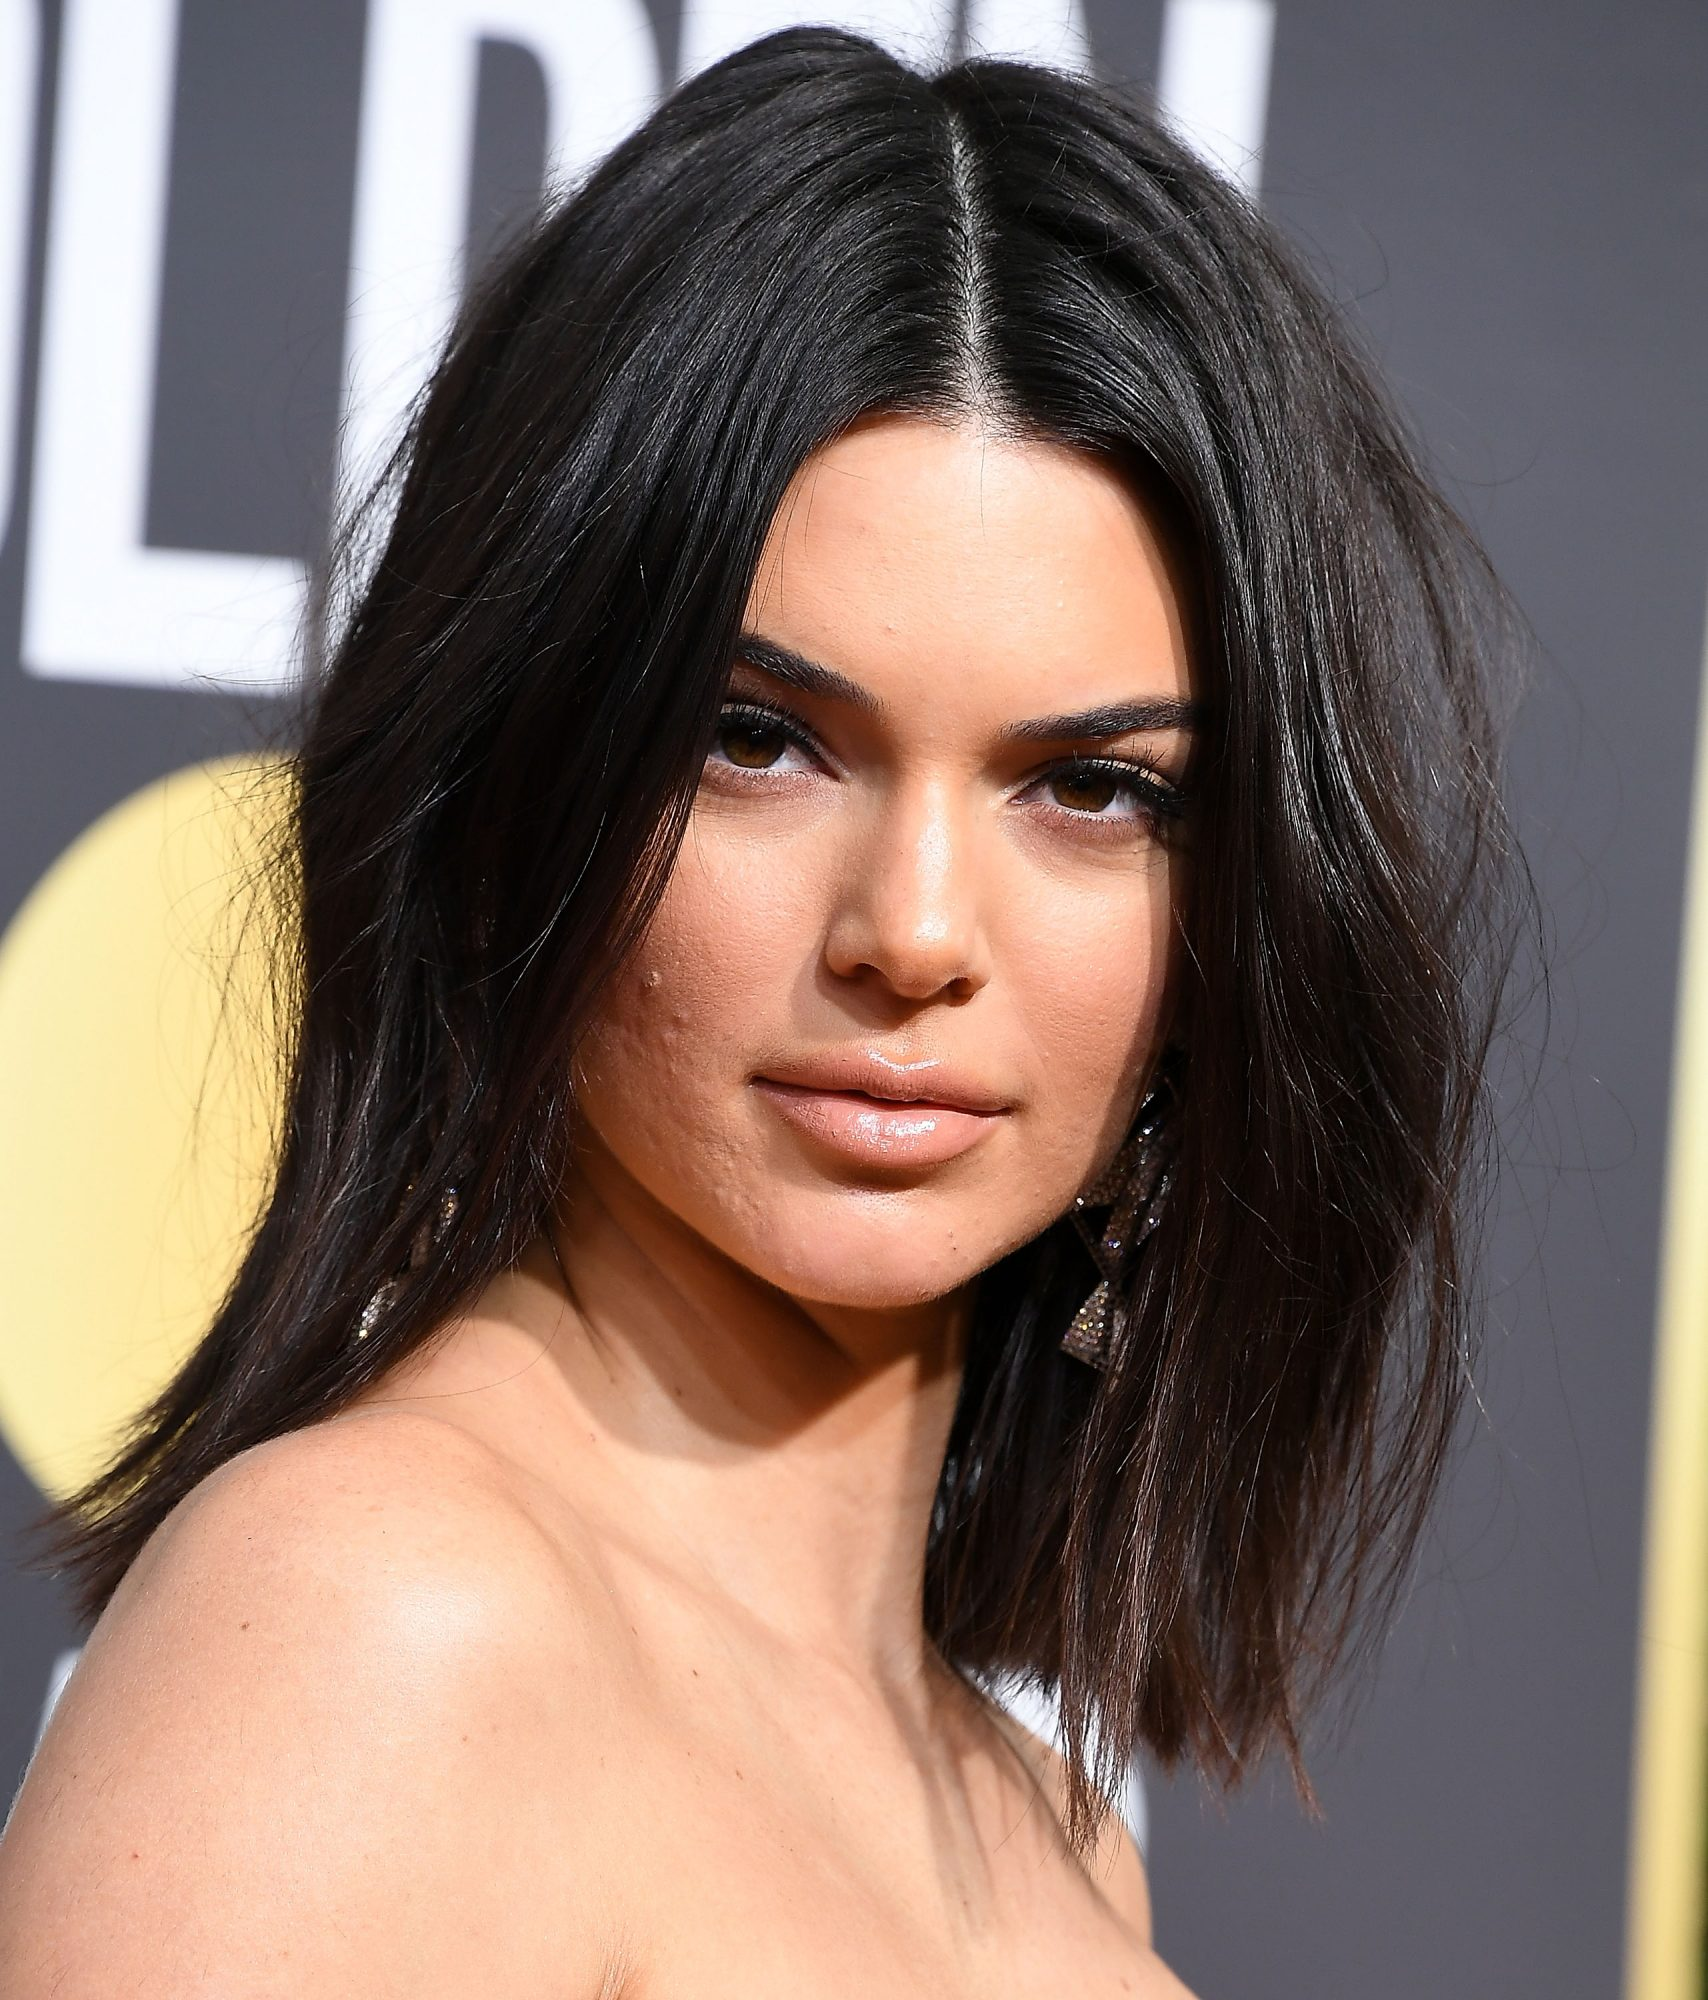 Kendall Jenner Opens Up About Her Golden Globes Acne: 'Never Let That S--- Stop You!'